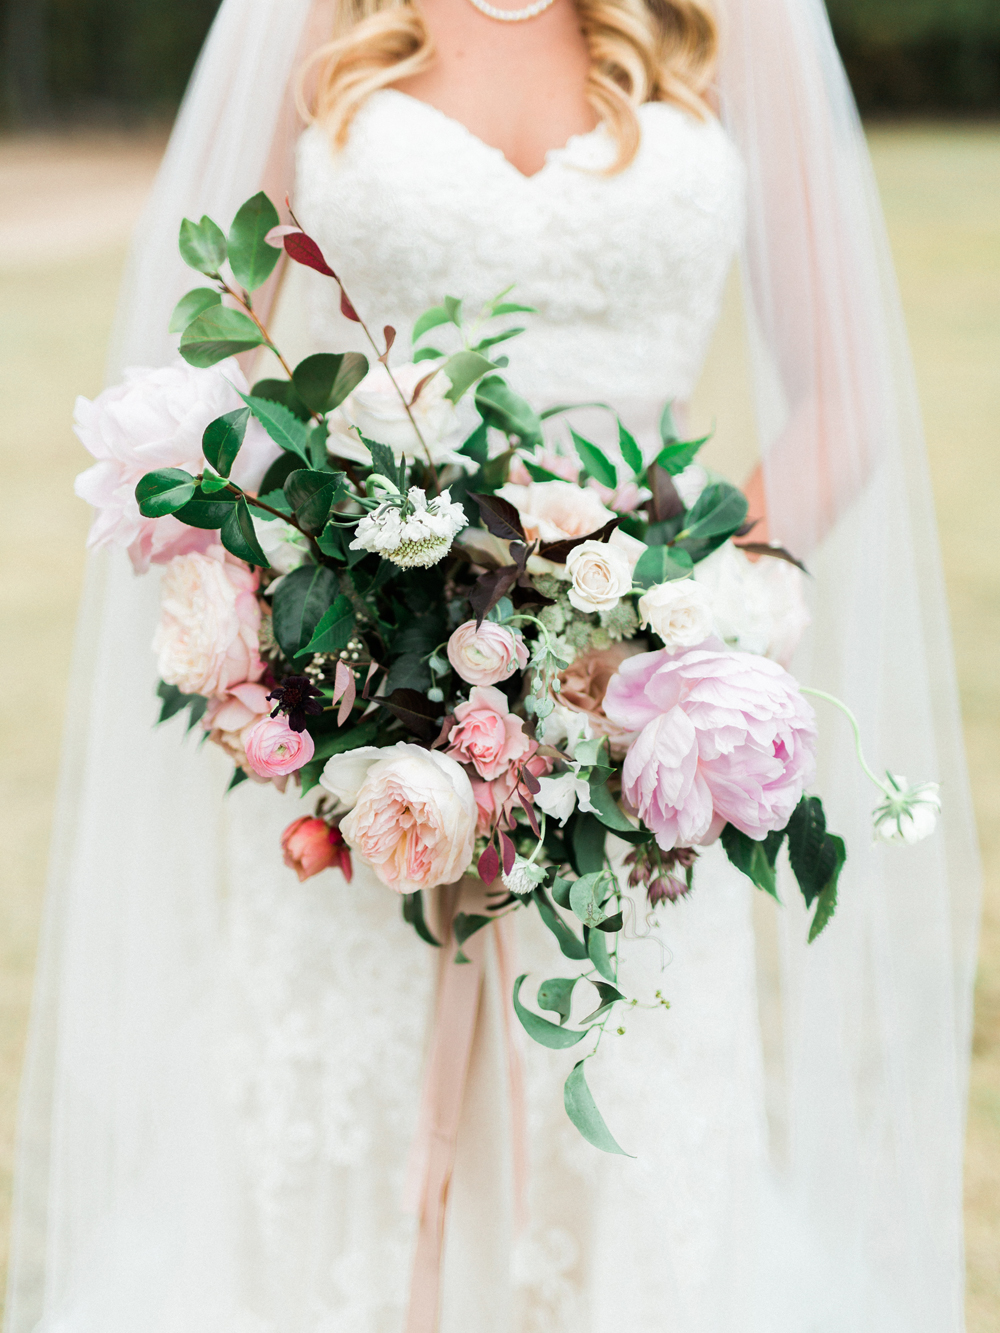 garden wedding bouquets - photo by Elisabeth Carol Photography http://ruffledblog.com/picturesque-garden-wedding-at-white-sparrow-barn